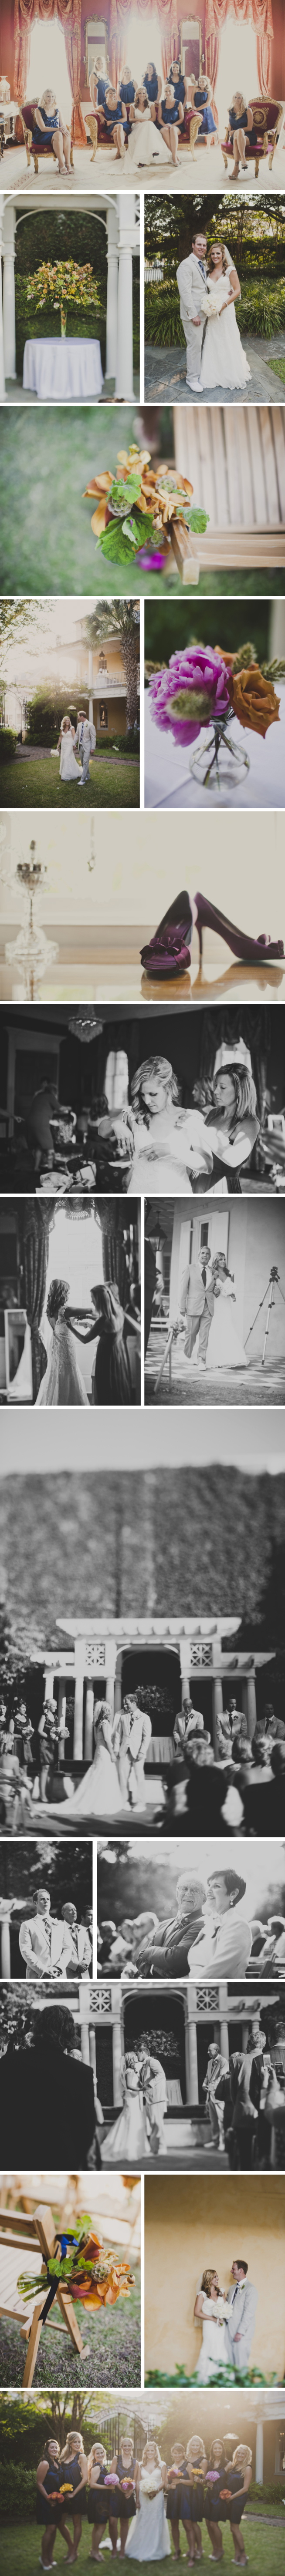 wedding ideas | wedding blogs